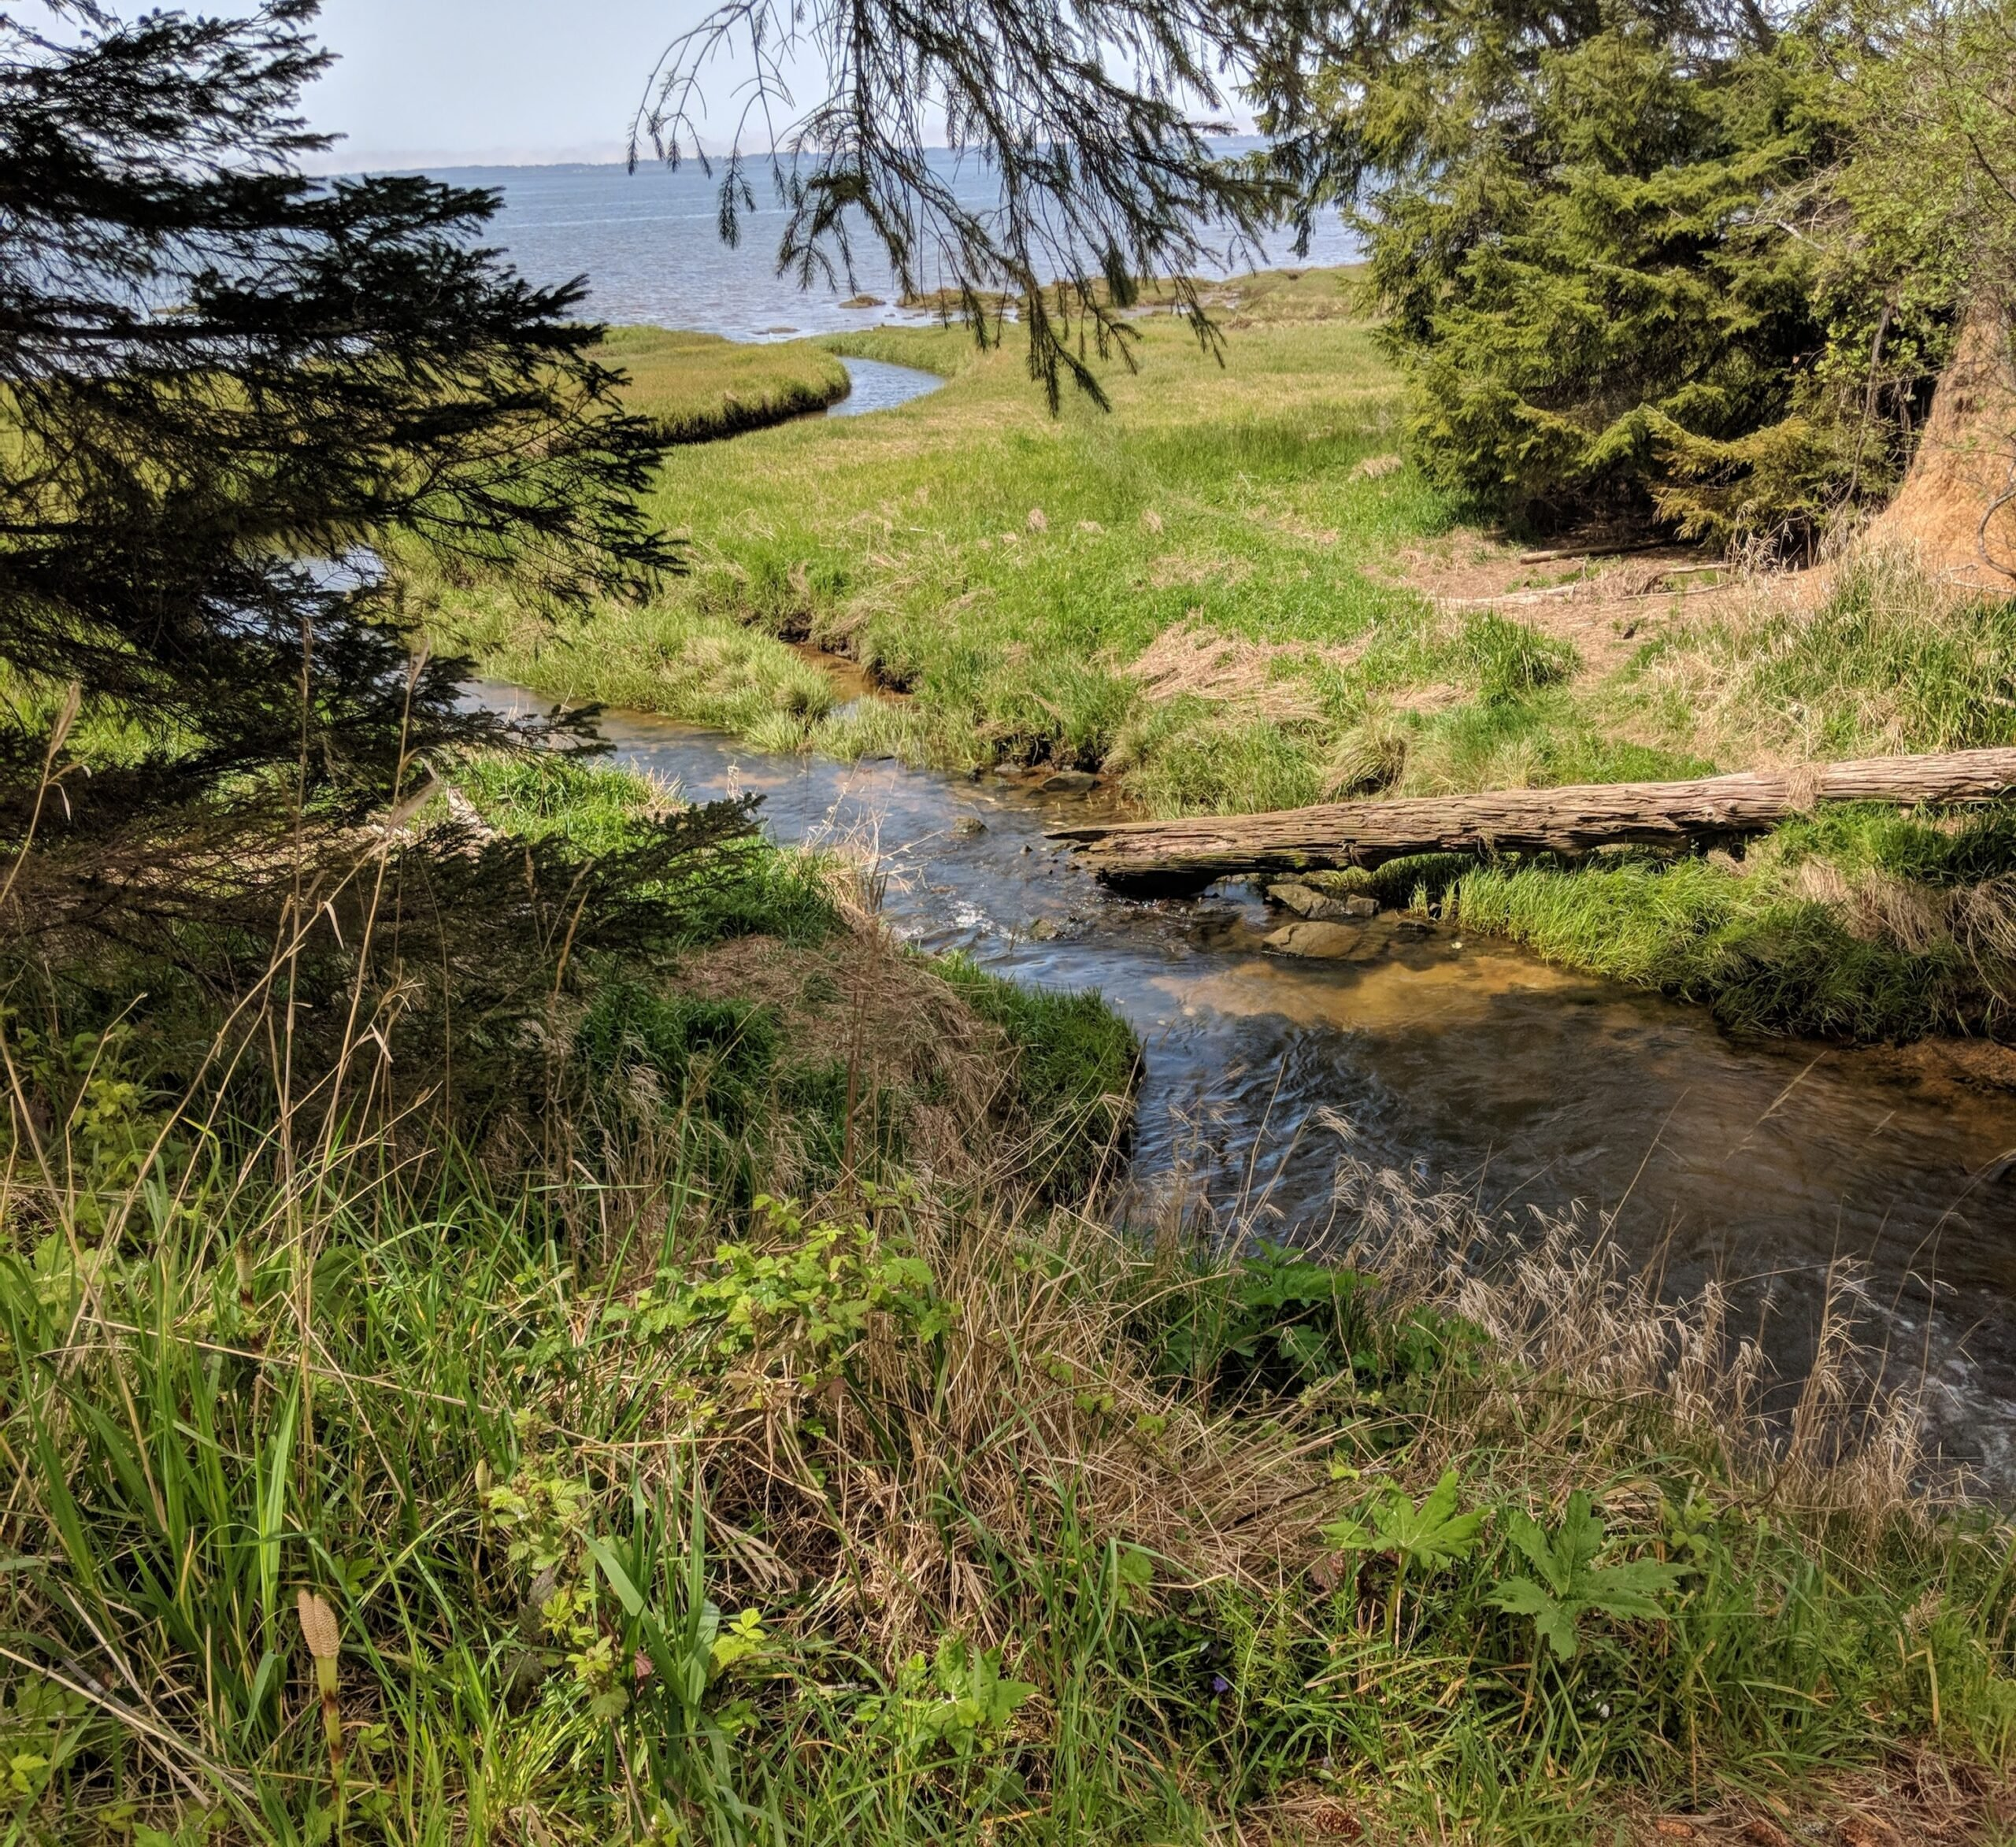 A small creek leading to the pacific ocean